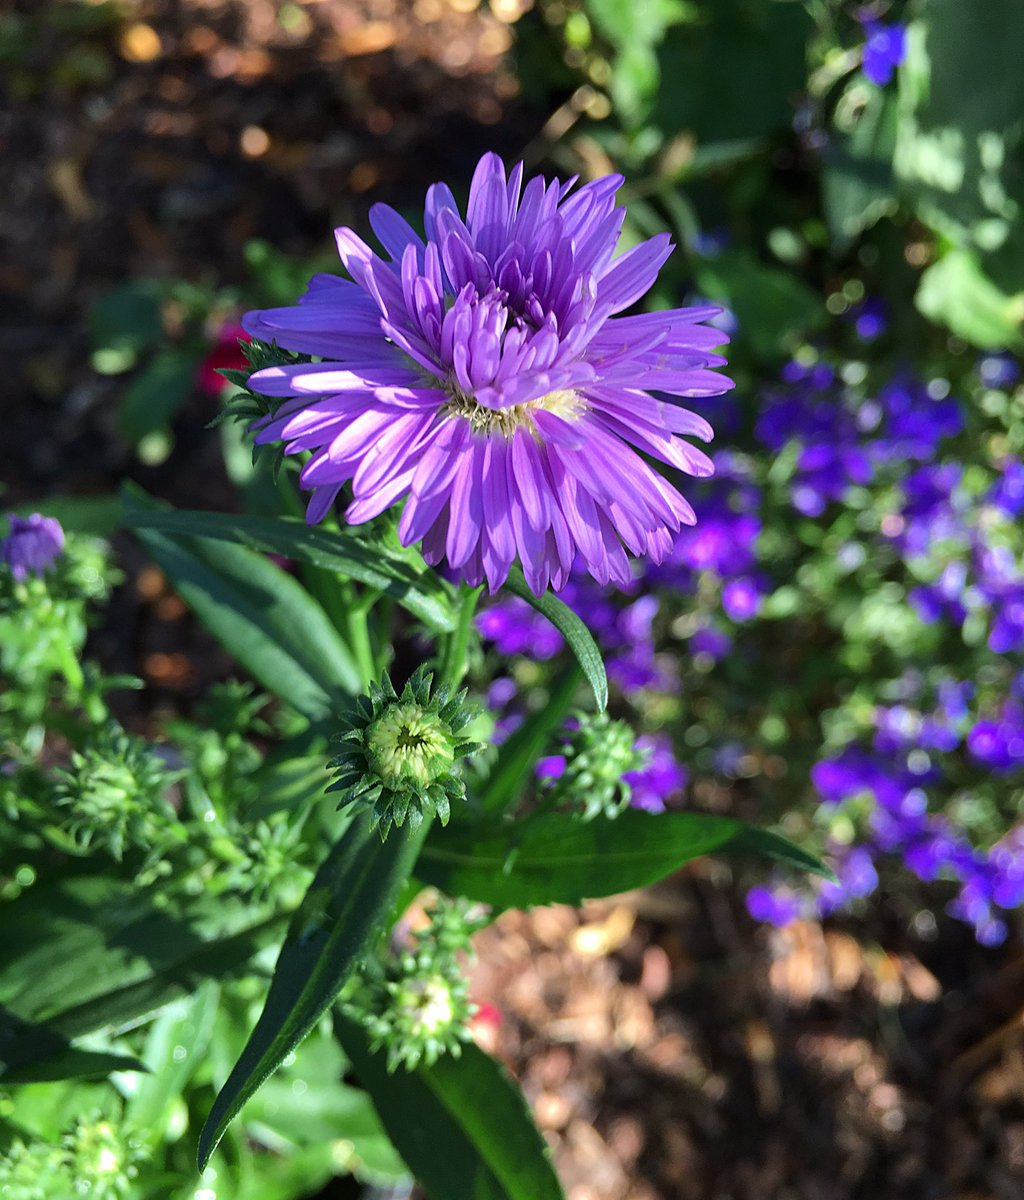 After a weekend of deadheading and clearing I have gaps to fill so I'm off to the garden centre tomorrow for now I am grateful for the flowers I have, like this little aster #gardenshour<br>http://pic.twitter.com/GagOekb6AZ